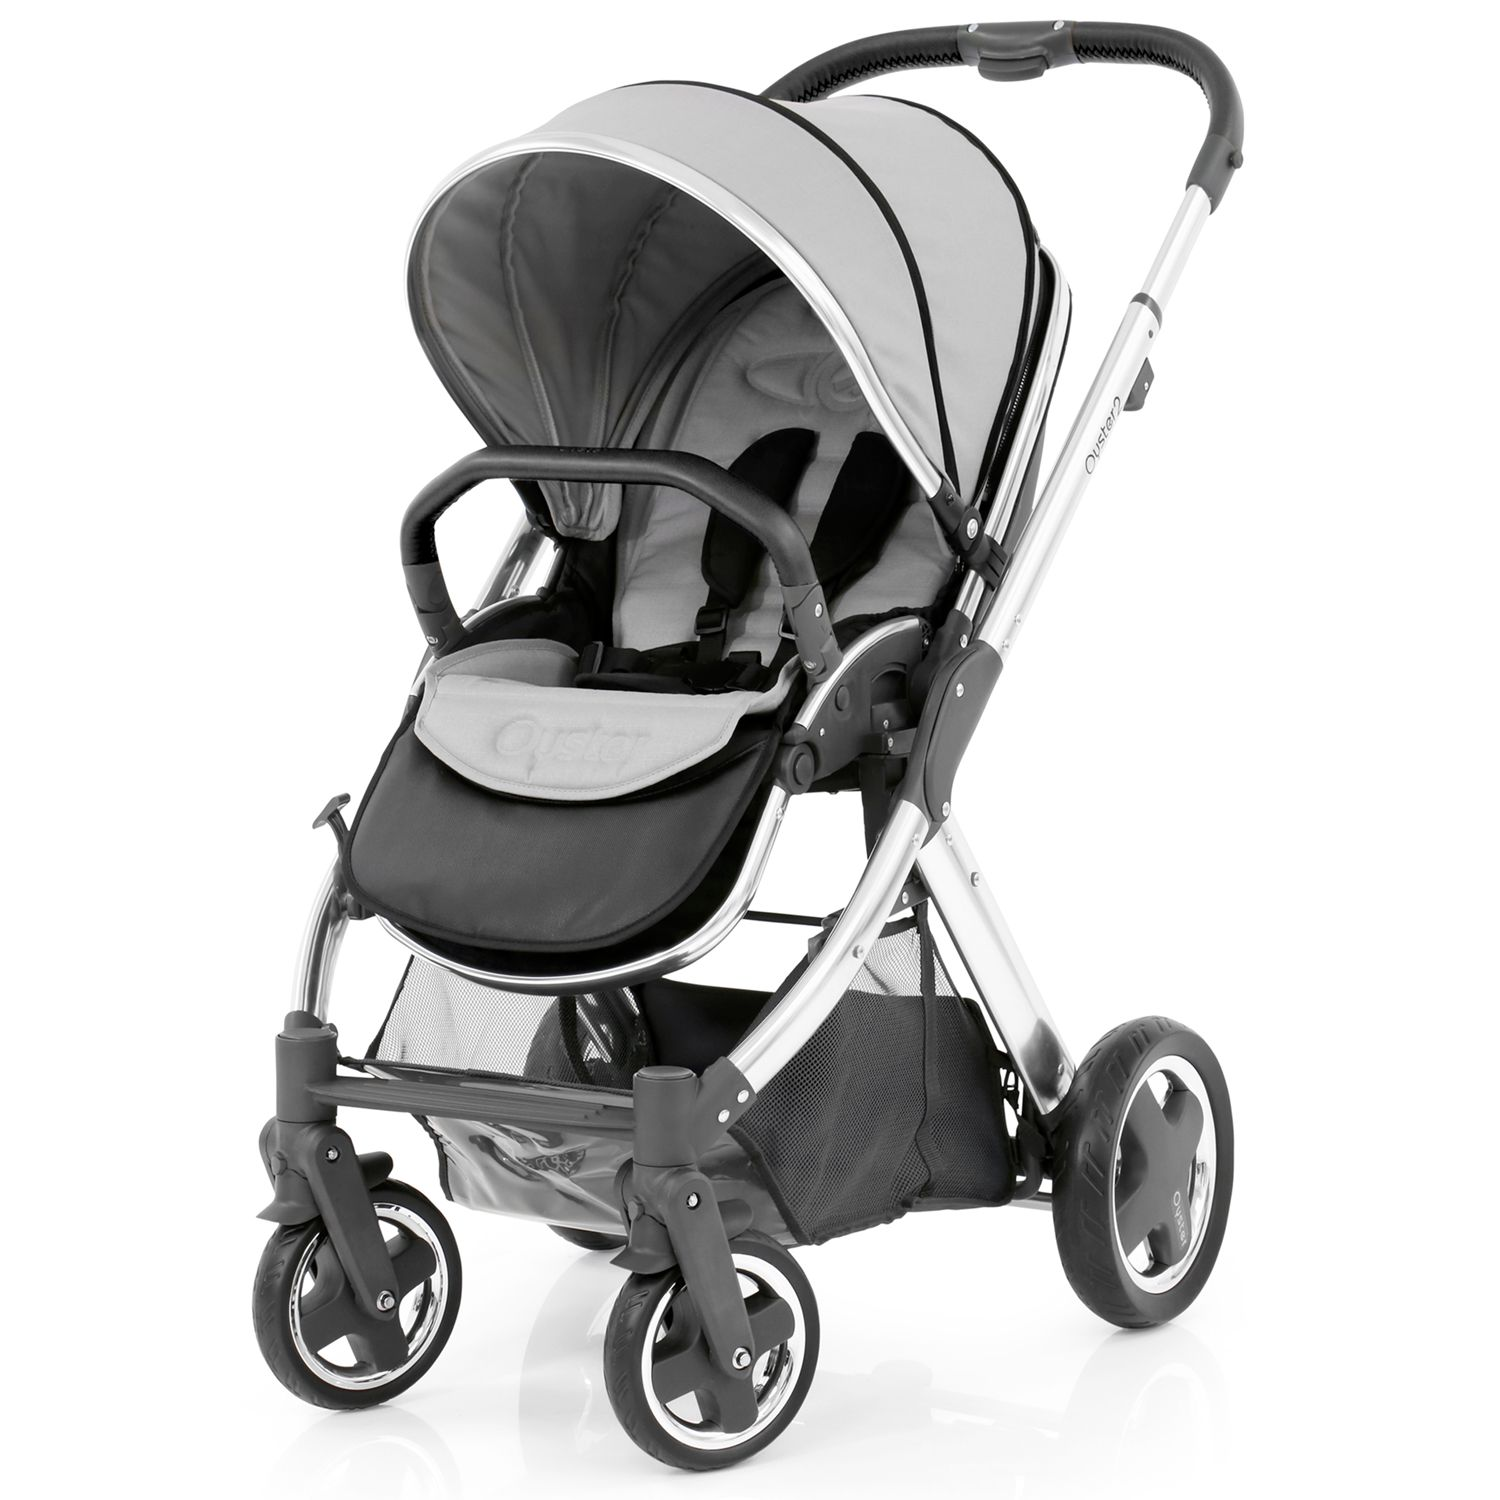 Oyster BabyStyle Oyster 2 and Oyster Max Pushchair Colour Pack